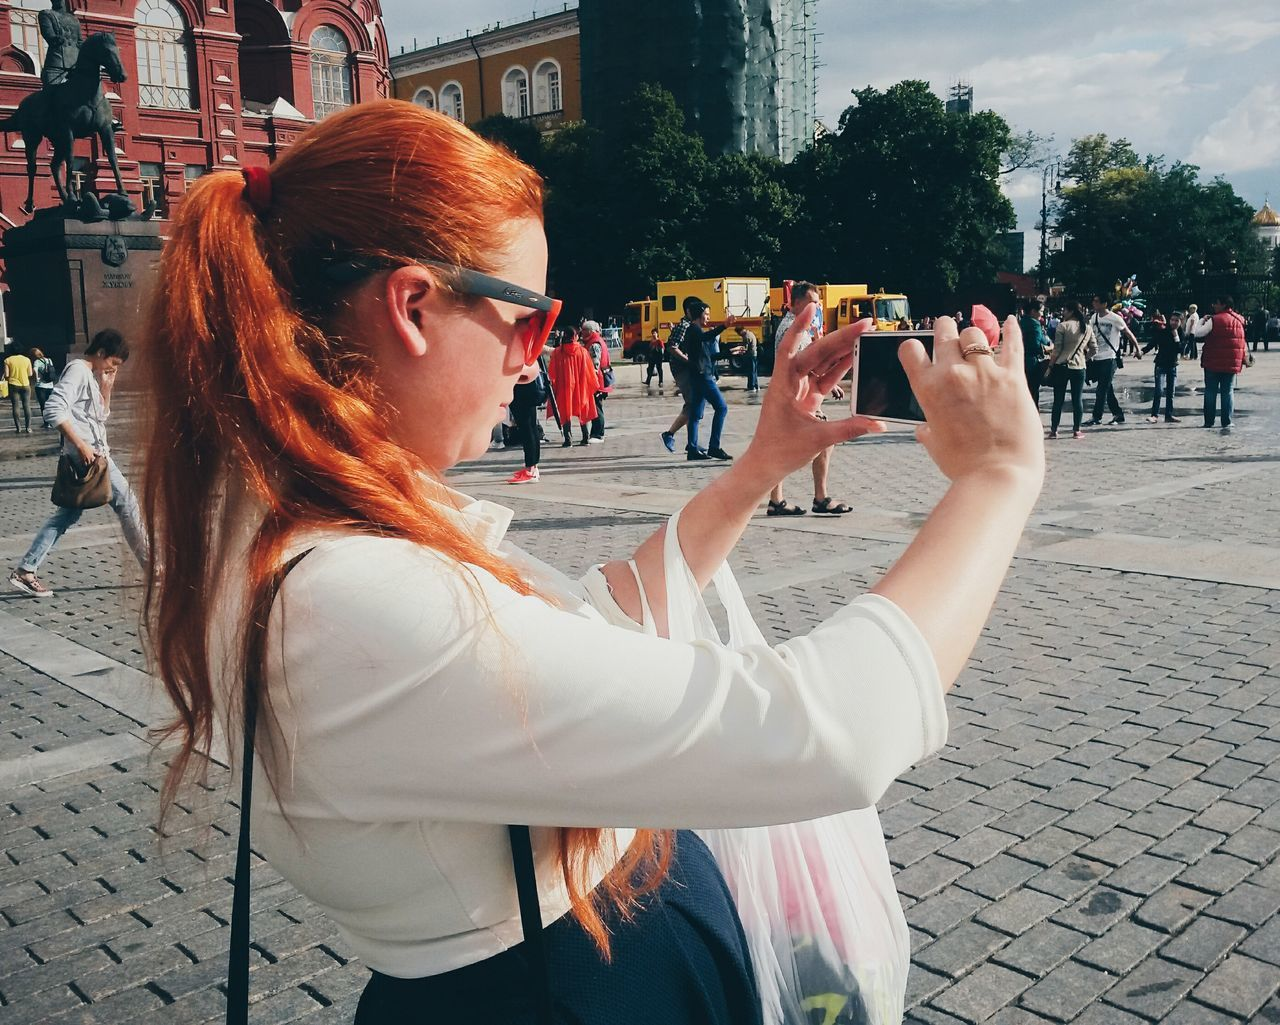 Taking Photos Street Photography Streetphotography People People Photography People Watching Peoplephotography Red Hair в Moscow, Russia